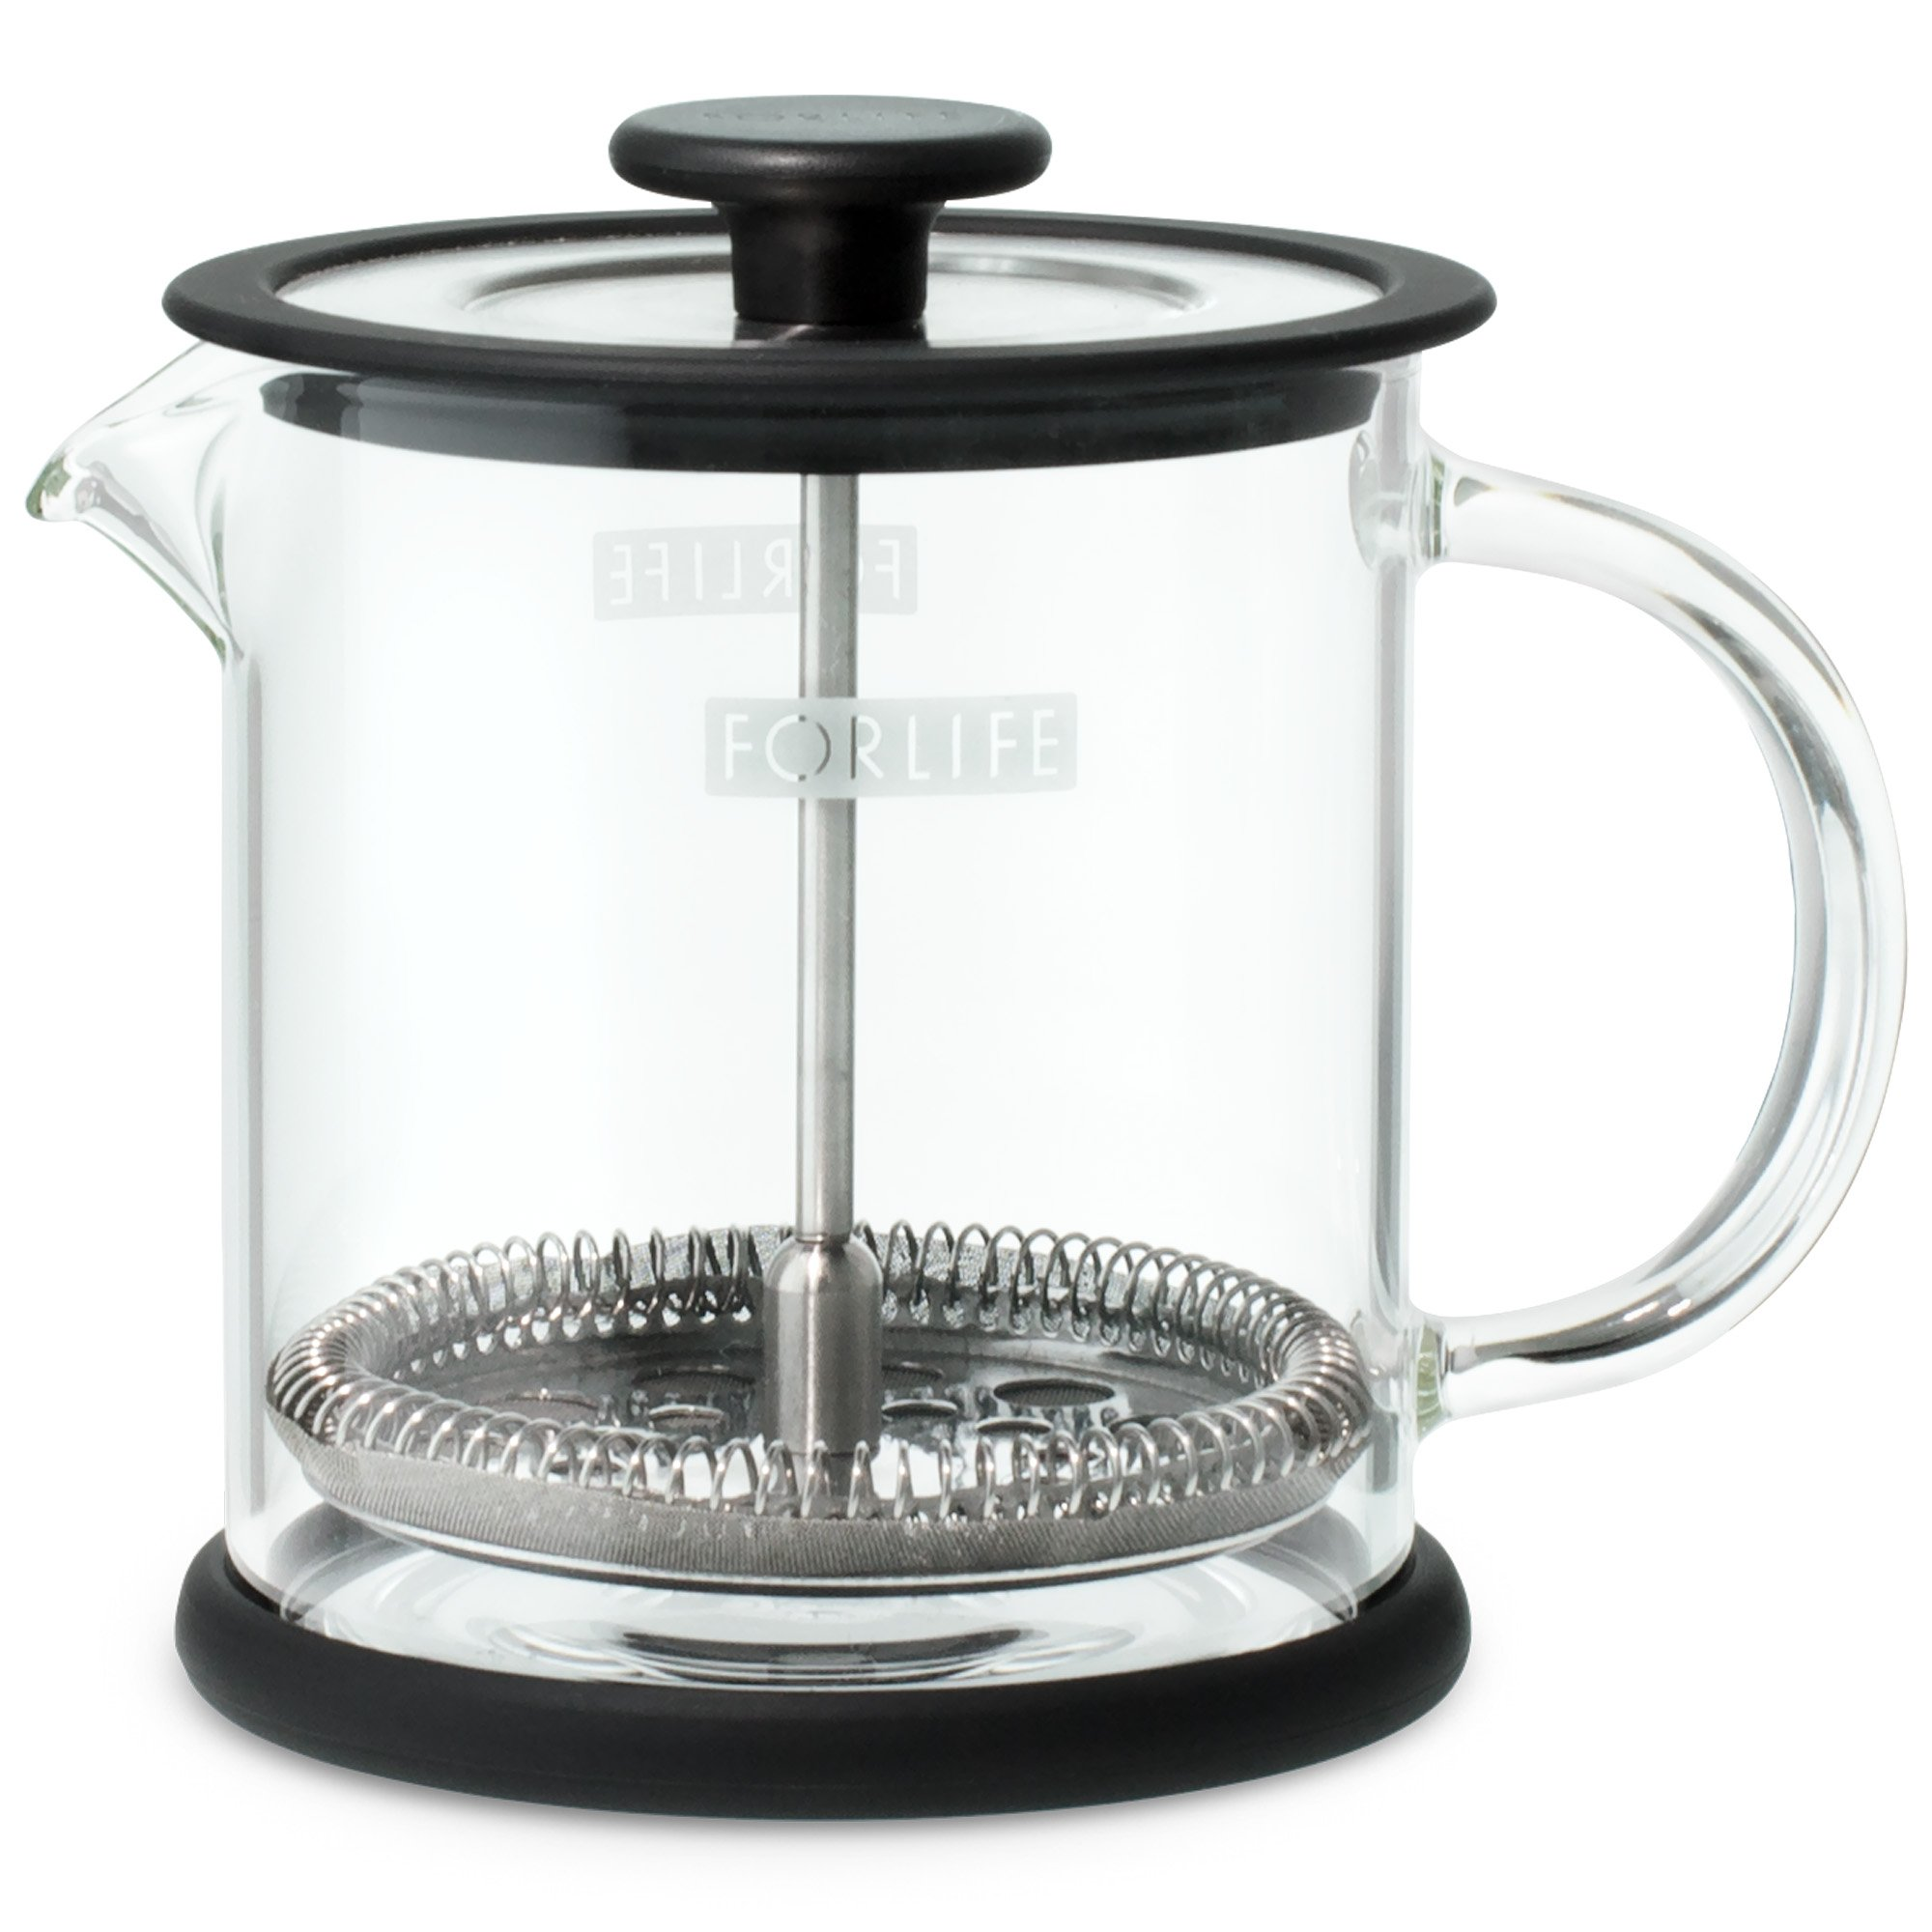 FORLIFE Cafe Style Glass Coffee/Tea Press, 16-Ounce, Black by FORLIFE (Image #2)